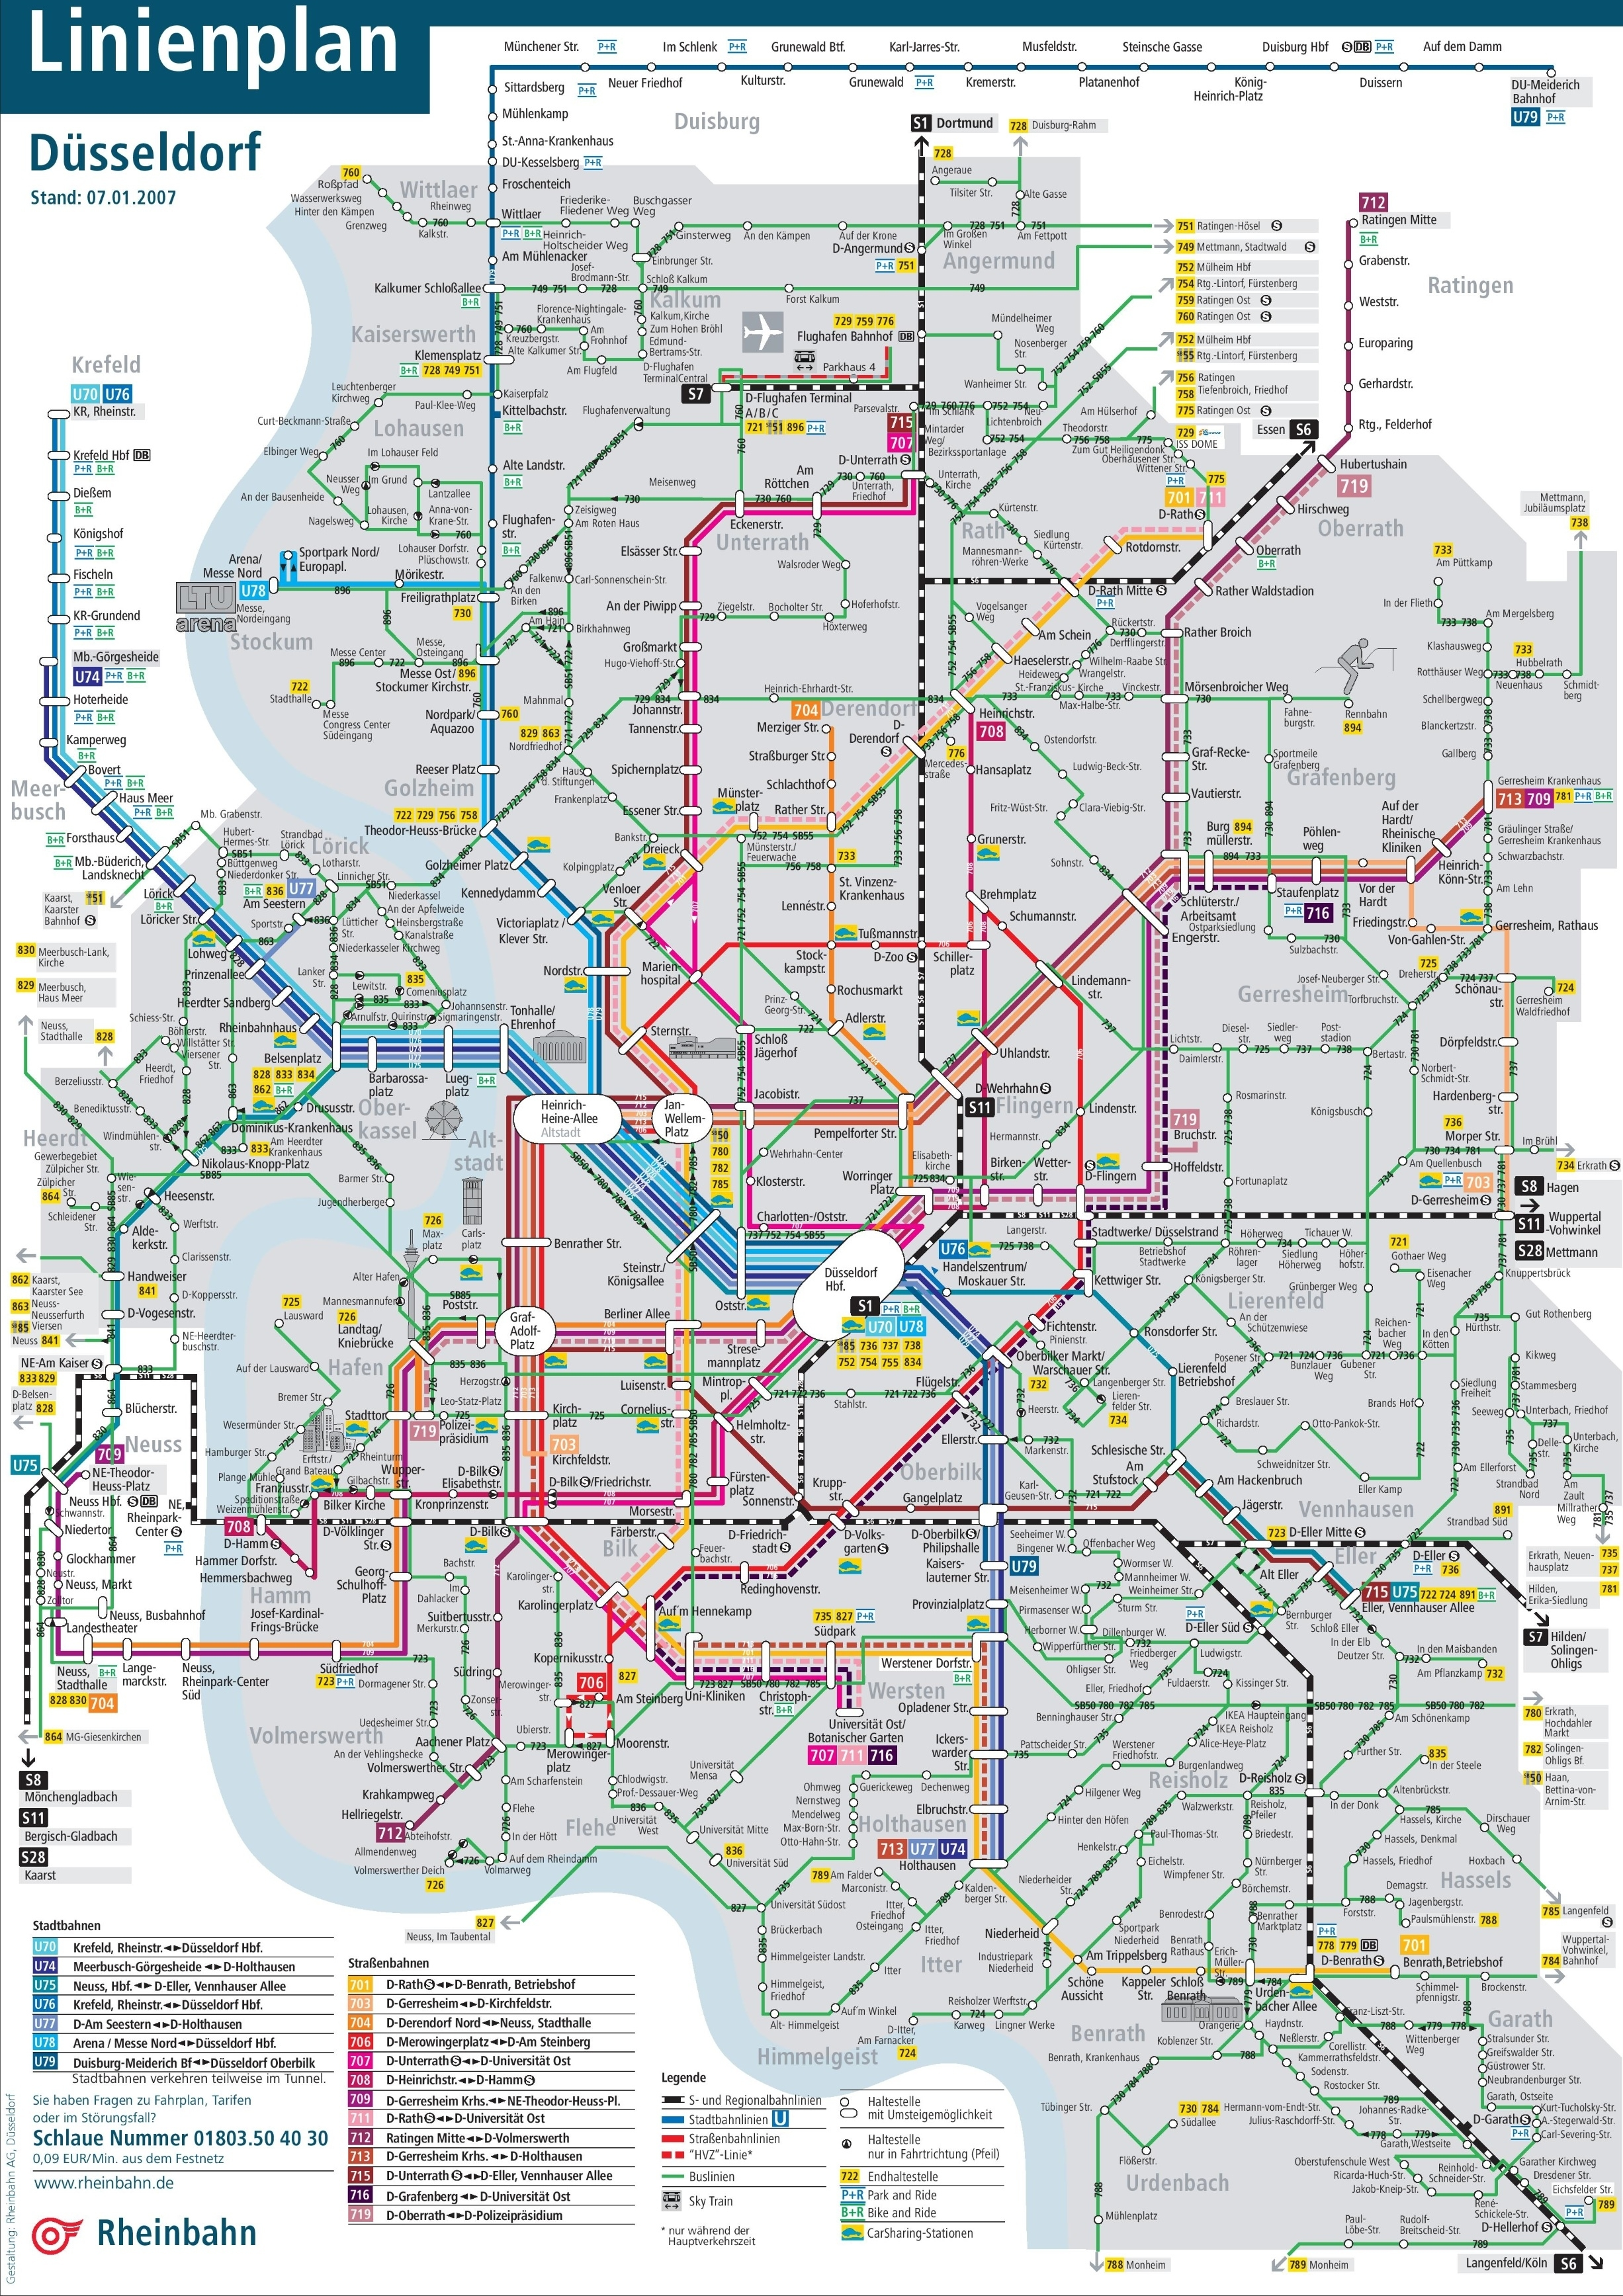 Düsseldorf Transport Map with regard to Where Is Dusseldorf Germany On The Map